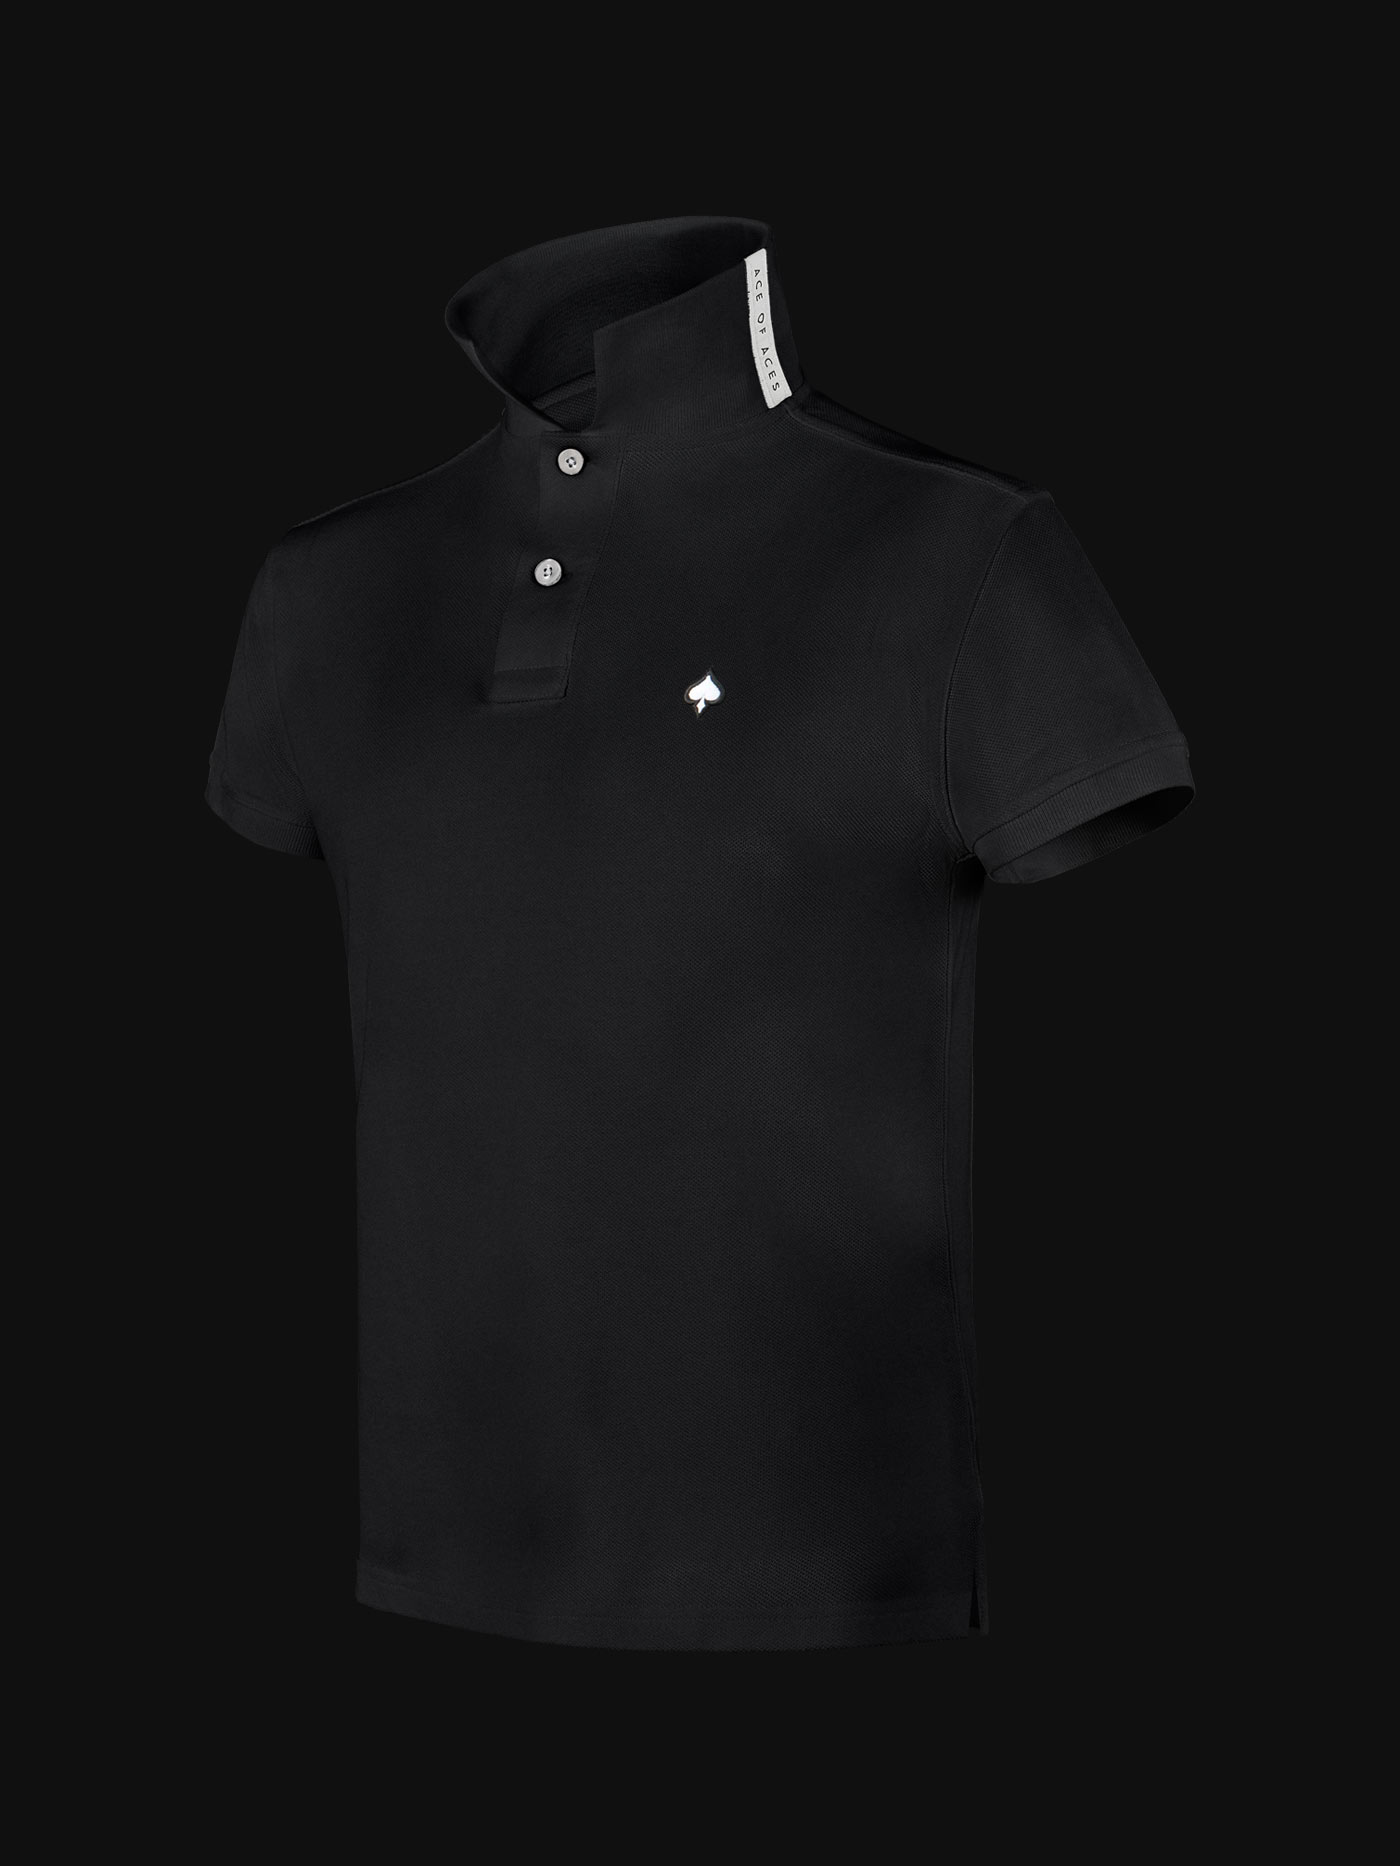 The luxury Black Ace Man Polo Shirt side view